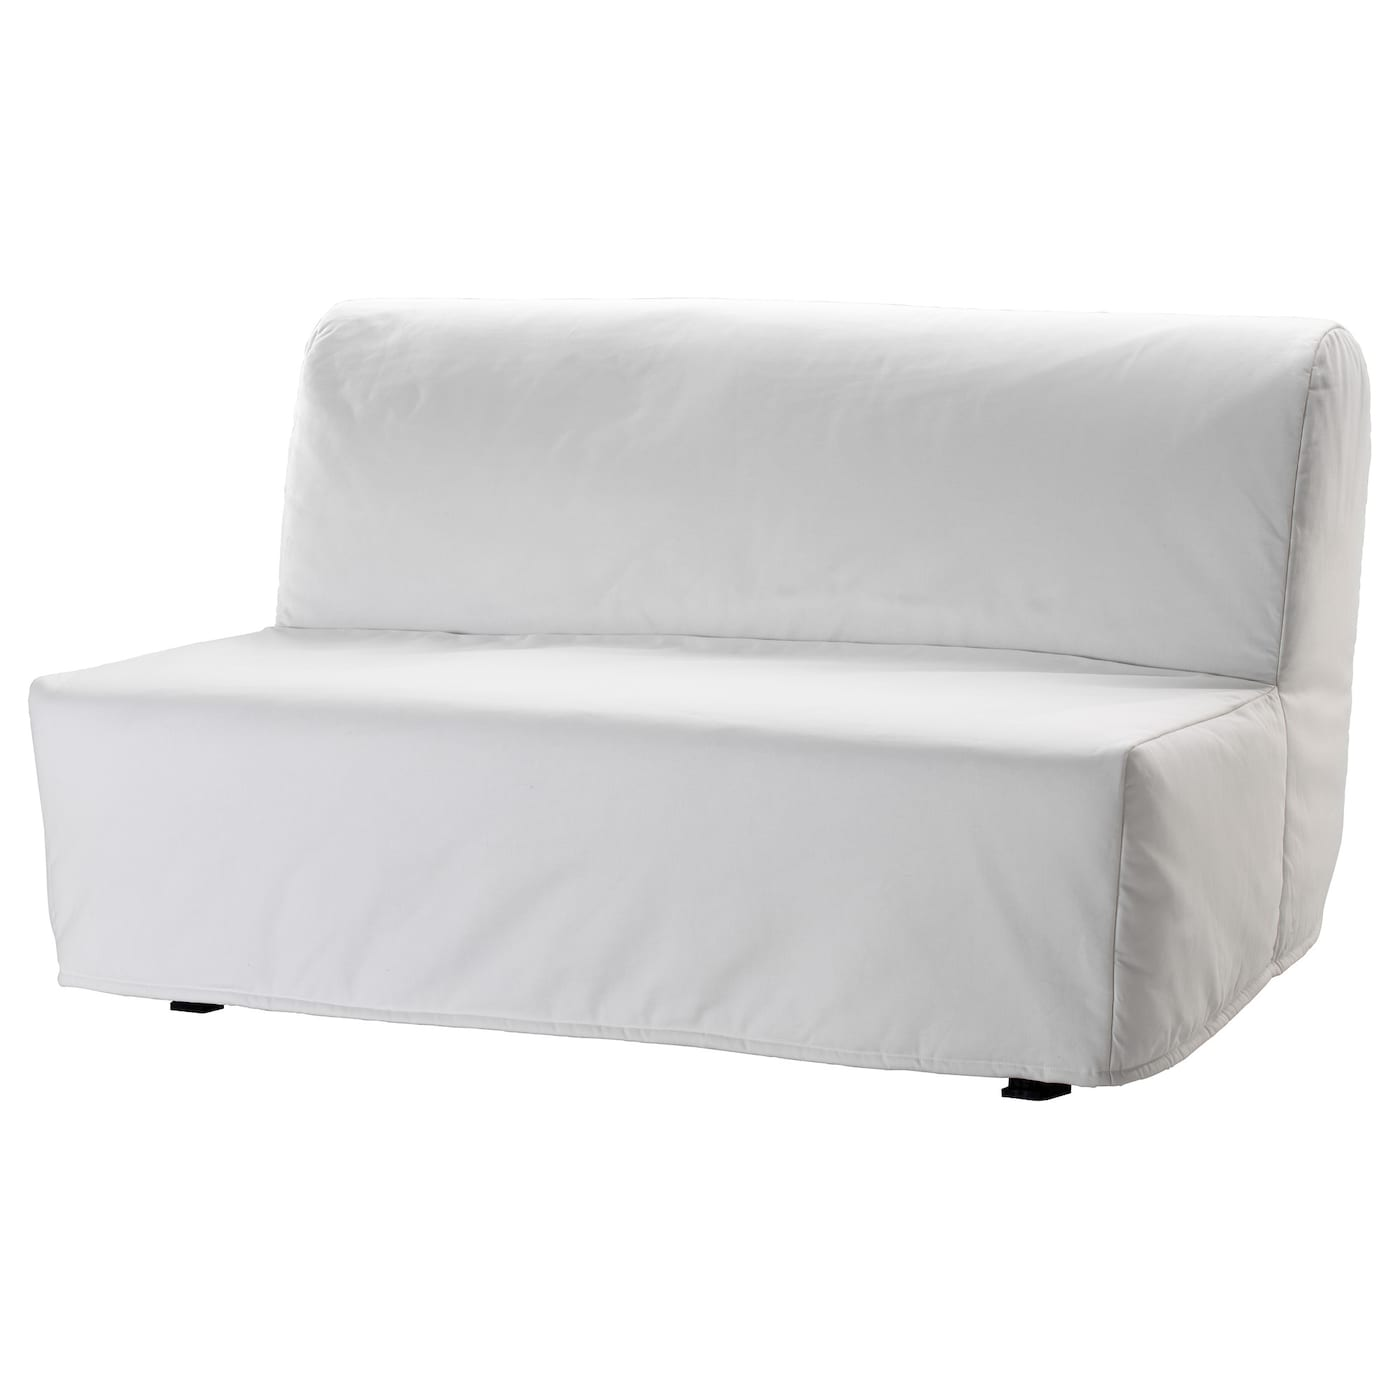 Ikea Lycksele LÖvÅs Two Seat Sofa Bed Readily Converts Into A Enough